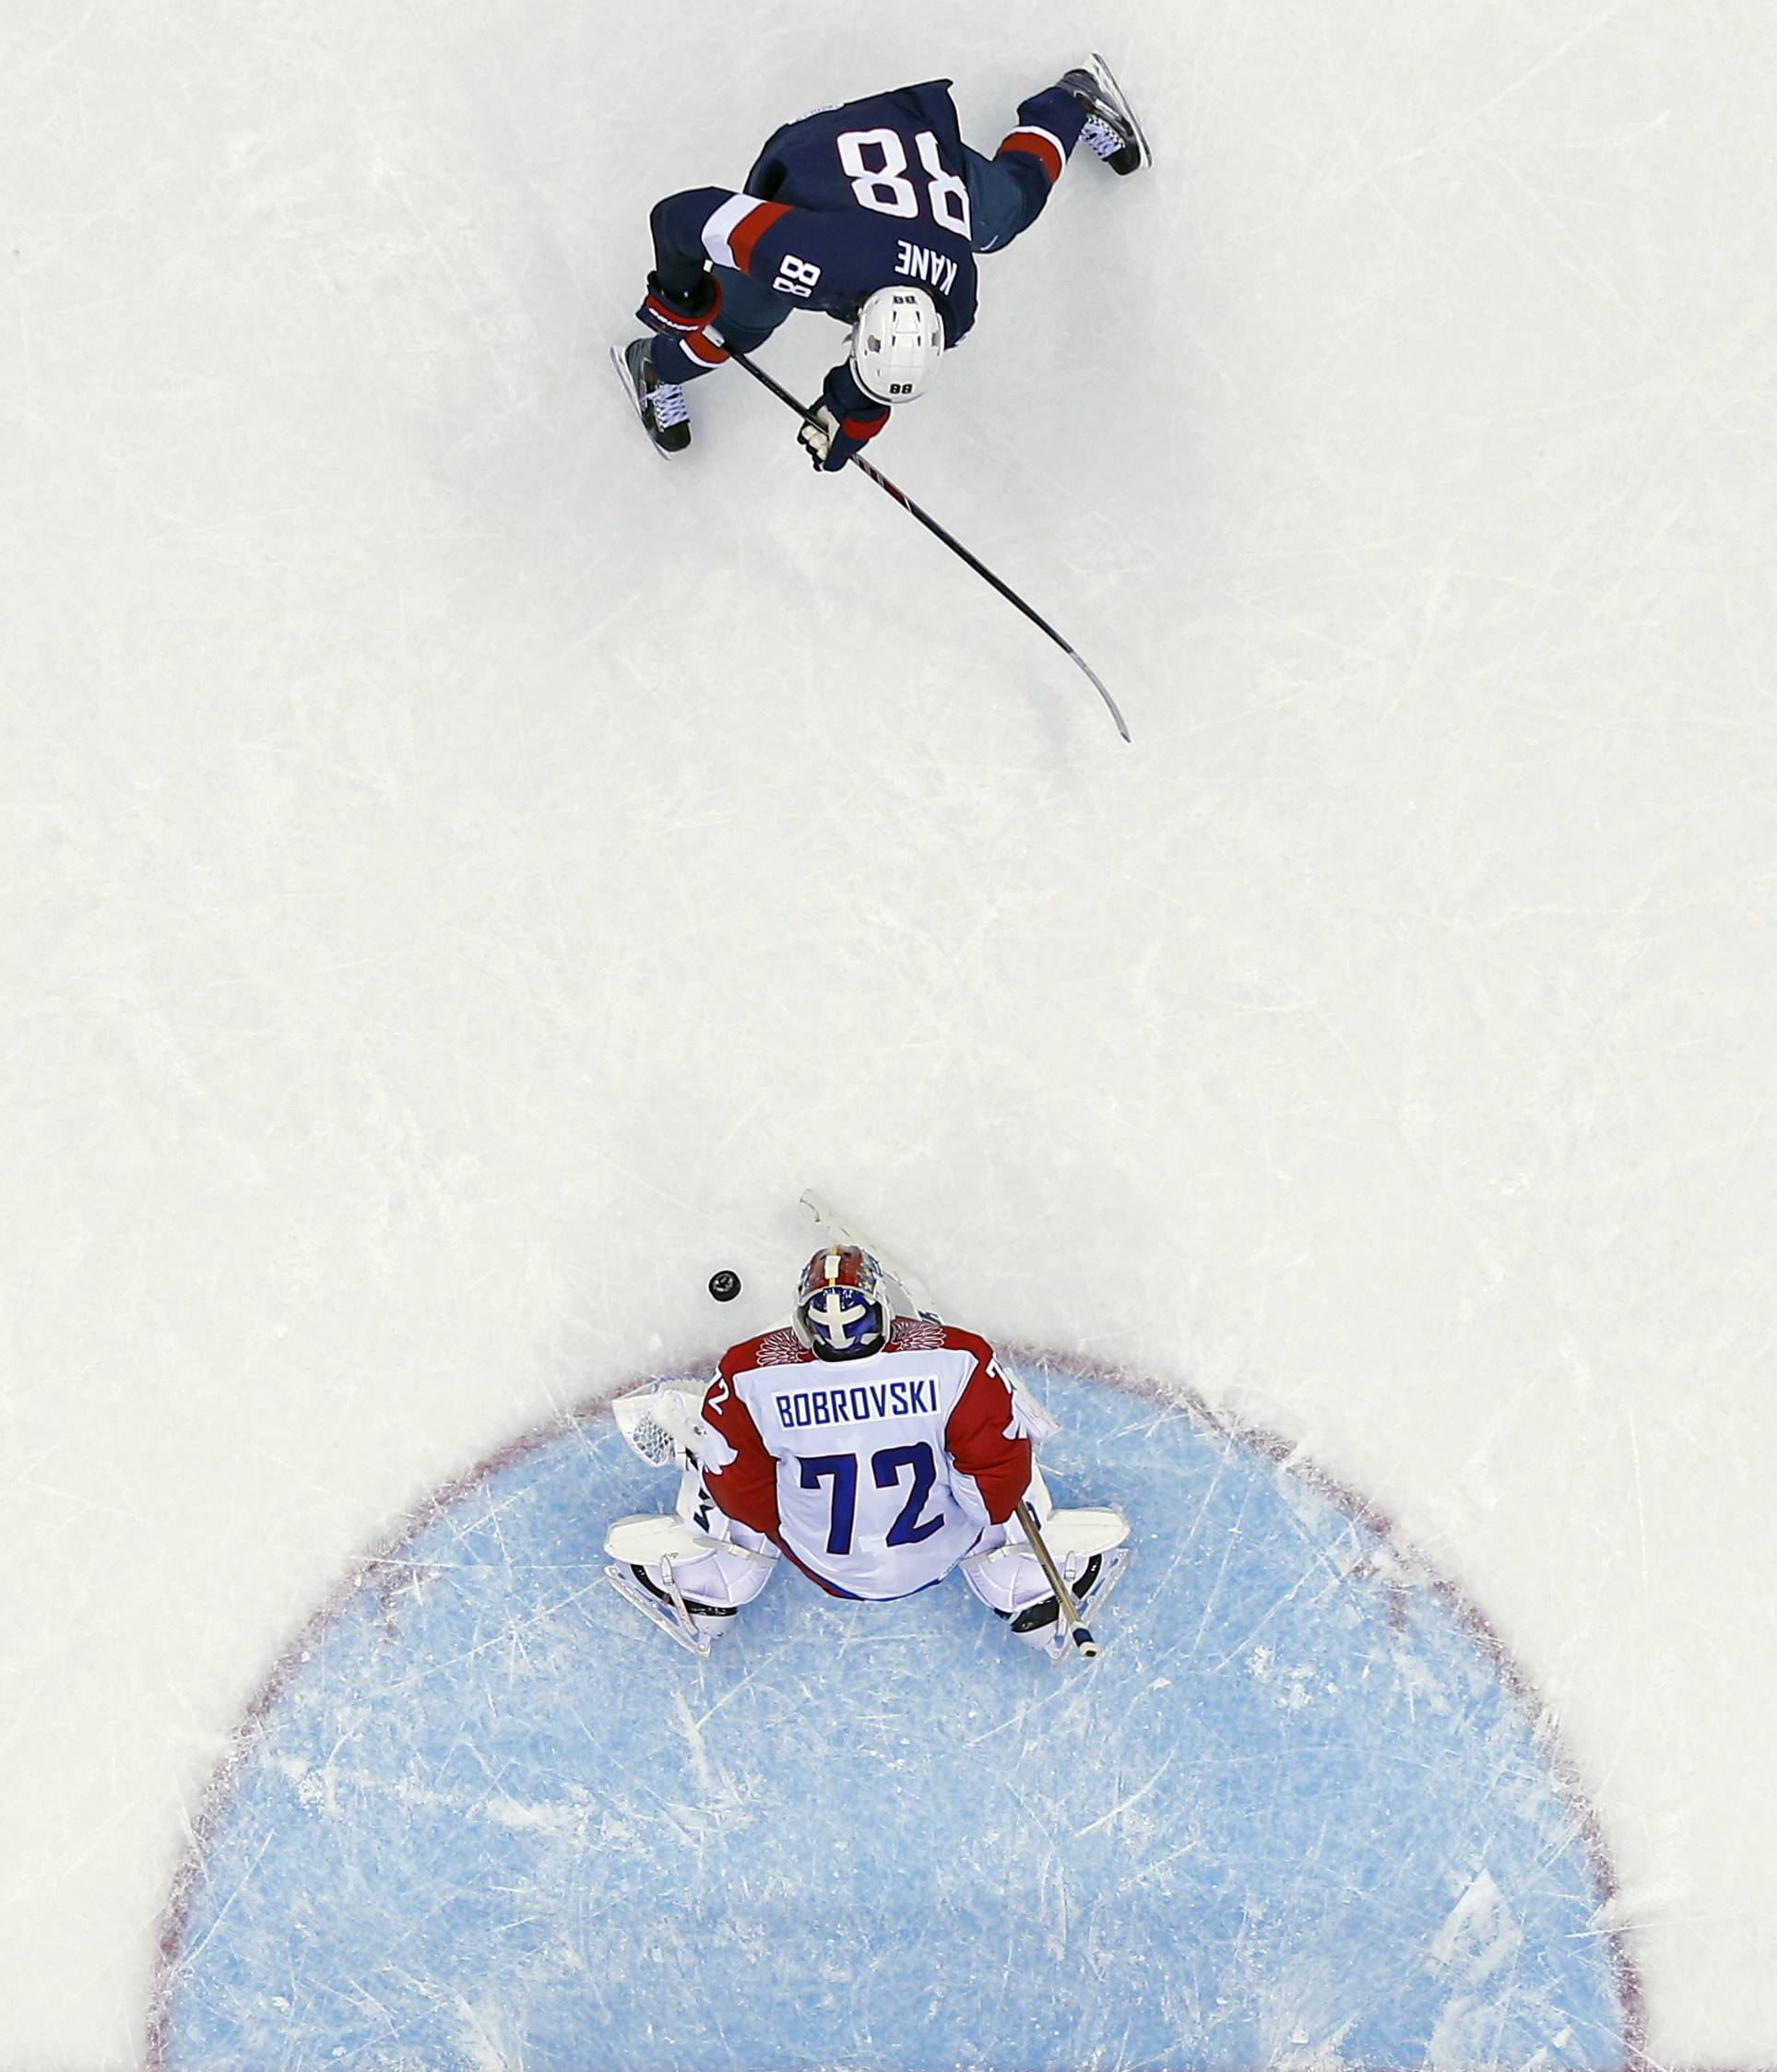 Russia goaltender Sergei Bobrovski stops a breakaway from USA forward Patrick Kane in overtime of a men's ice hockey game at the 2014 Winter Olympics, Saturday, Feb. 15, 2014, in Sochi, Russia.